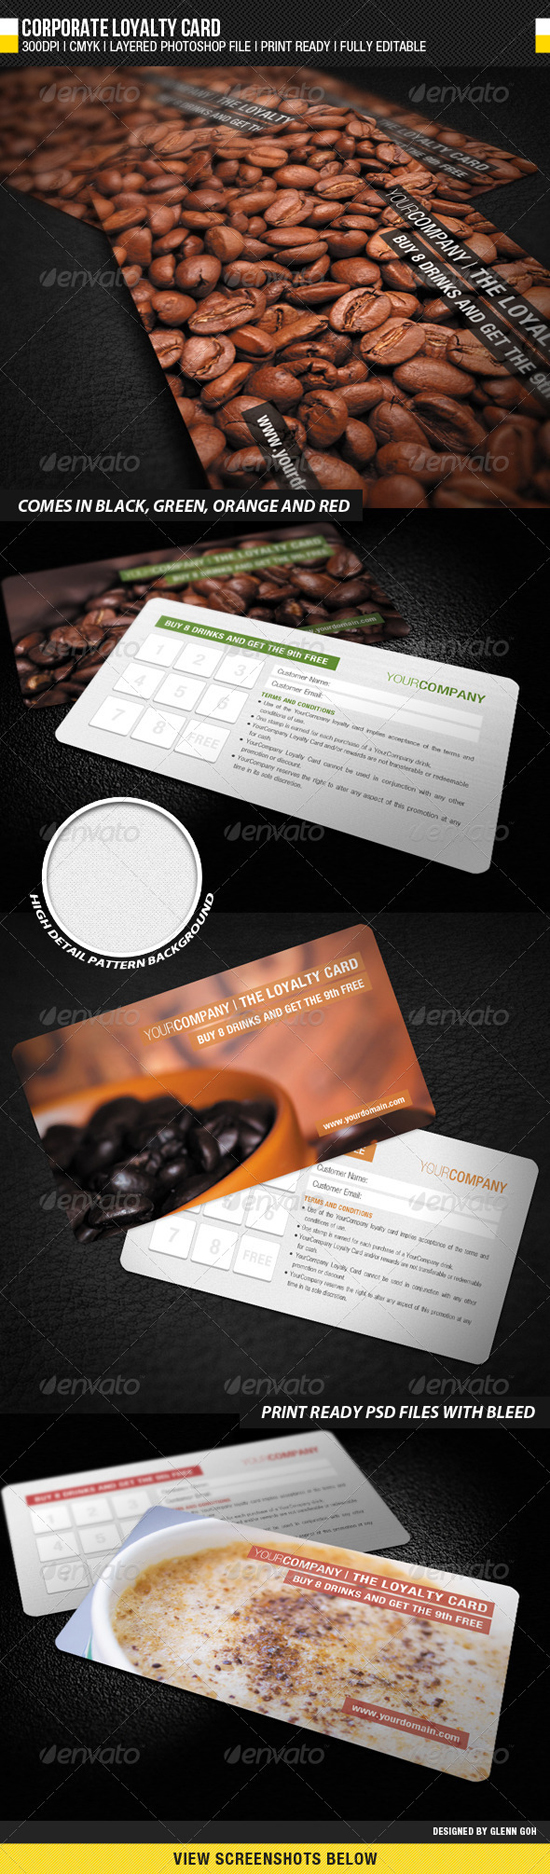 Coffee Corporate Loyalty Card